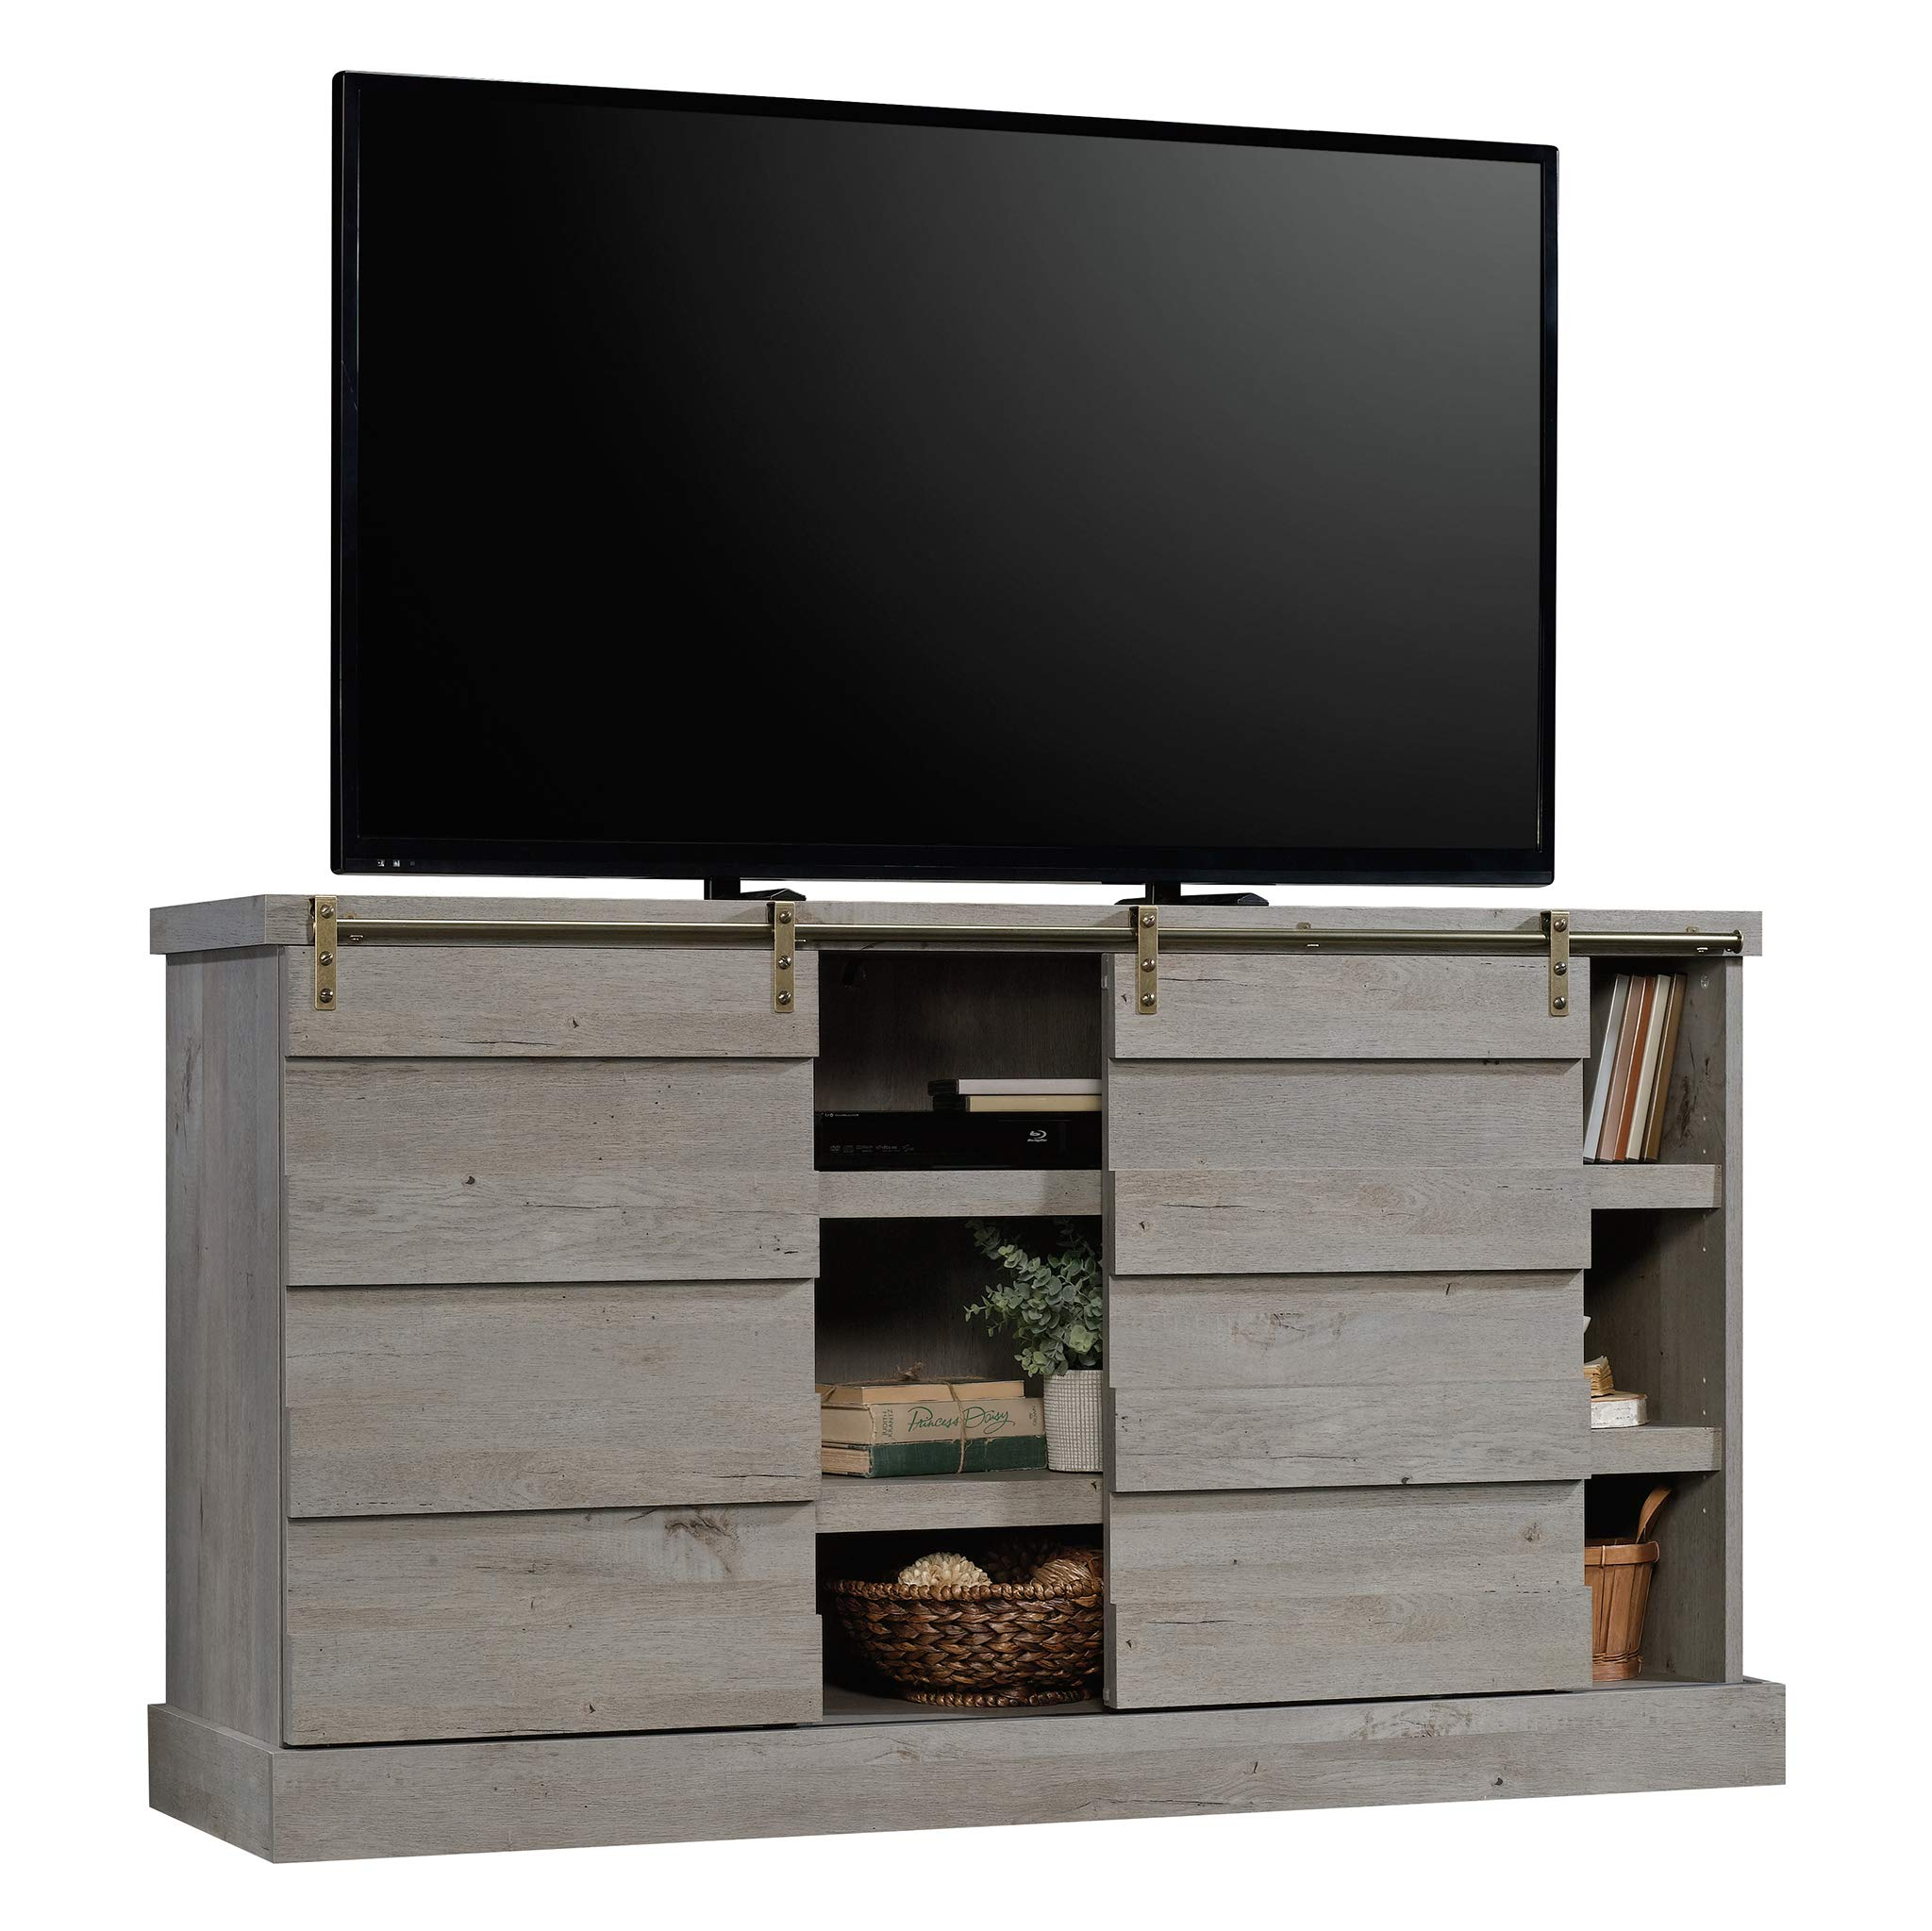 Sauder 422875 Cannery Bridge Credenza, Accommodates up to a 60'' TV Weighing 70 lbs. or Less, Mystic Oak Finish by Sauder (Image #2)